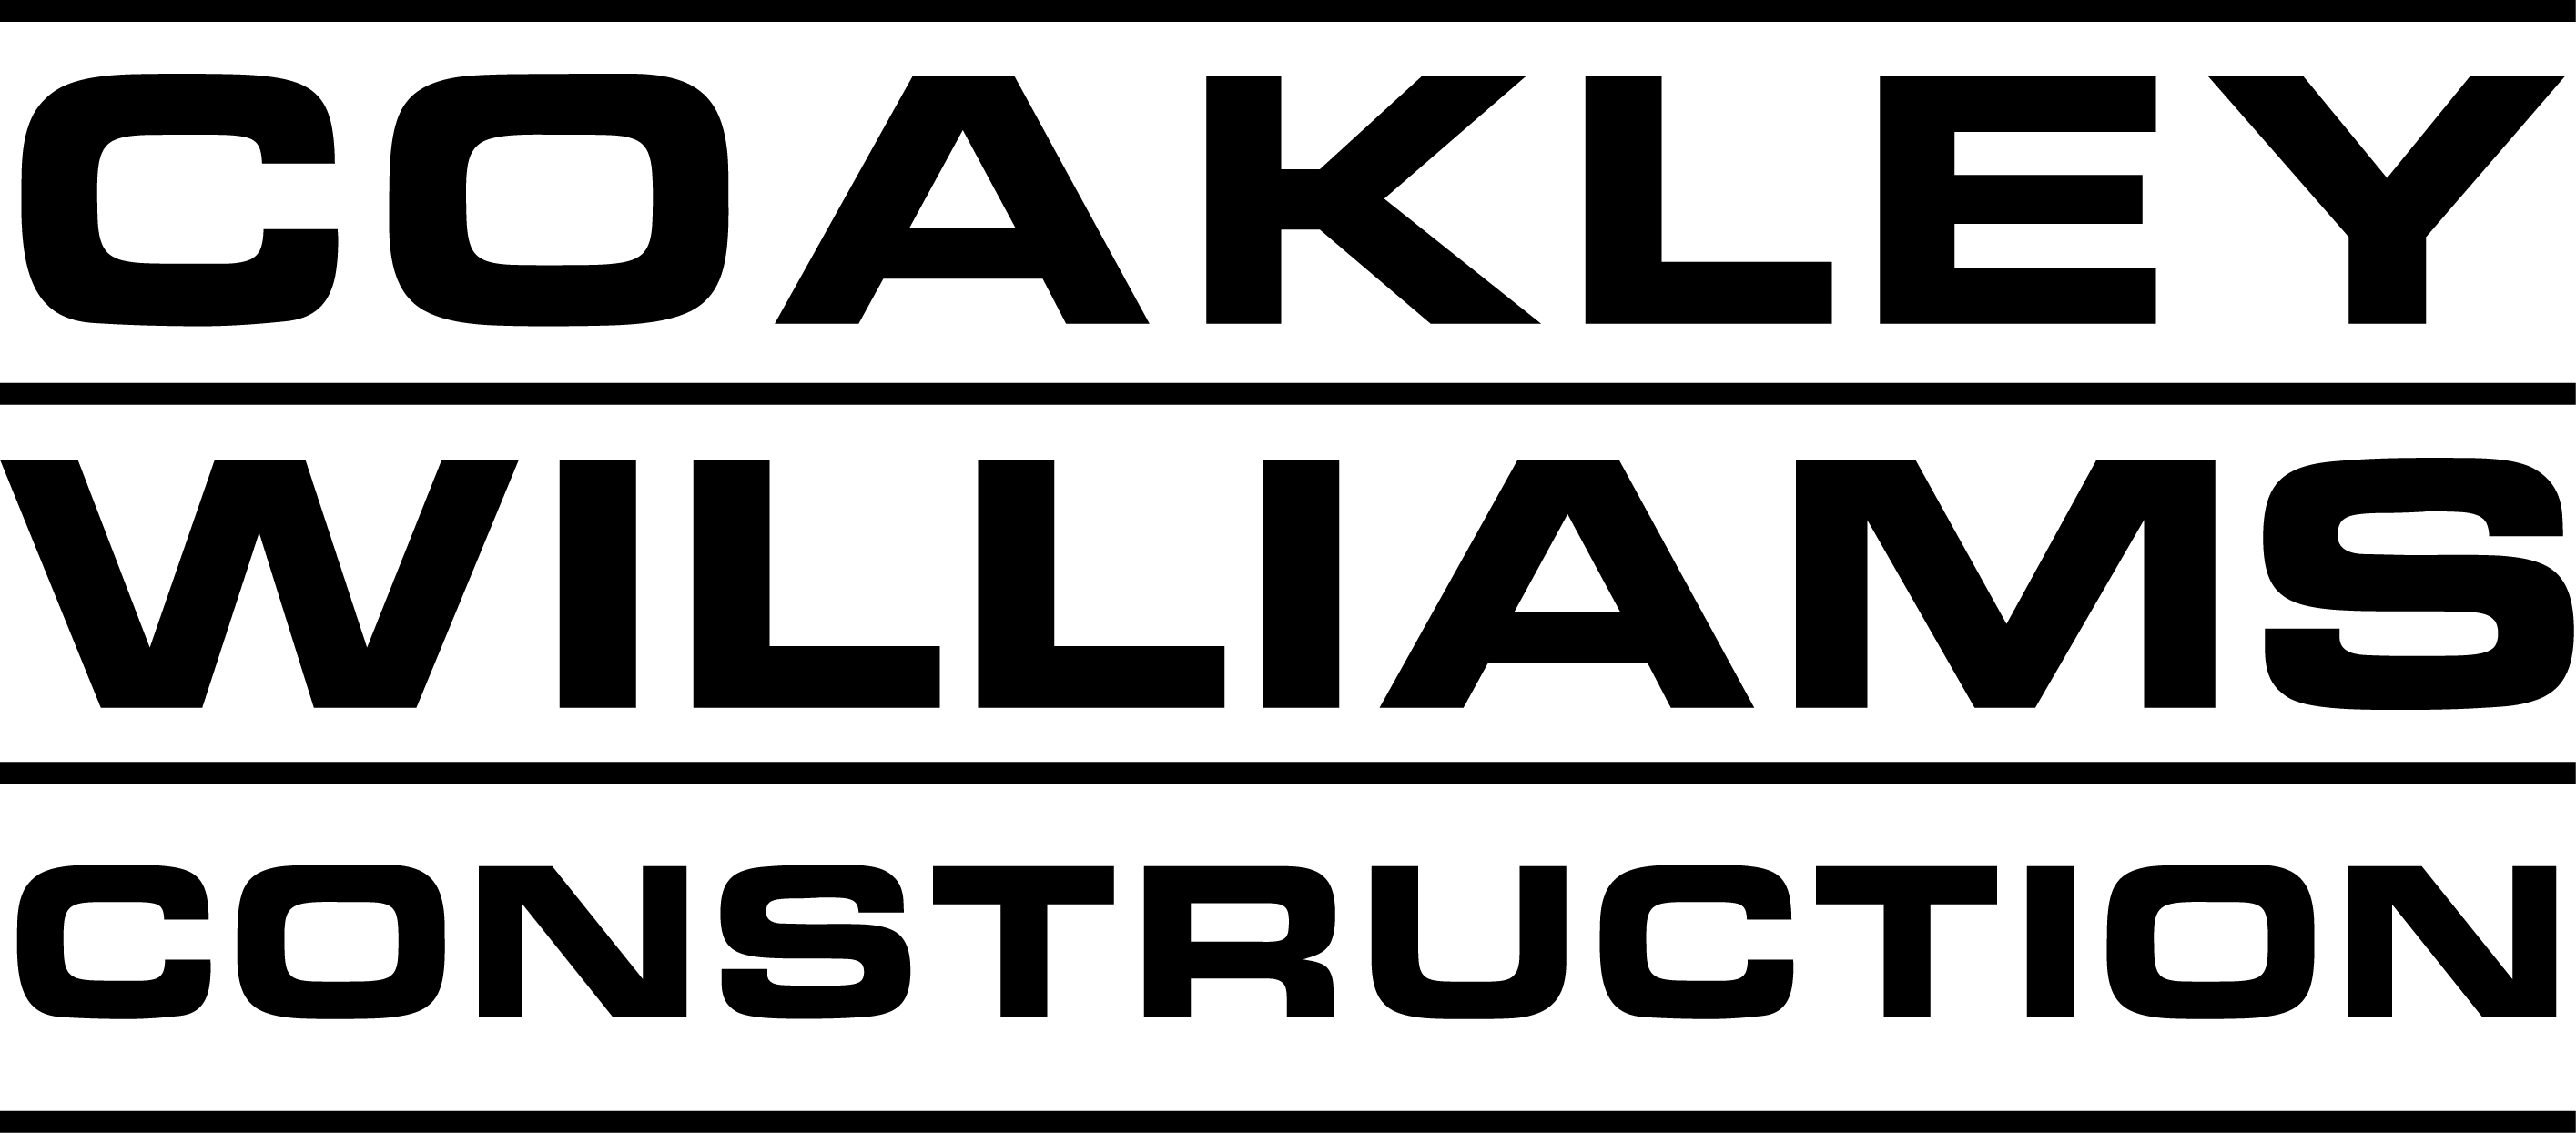 Coakley and Williams Construction Logo.jpg